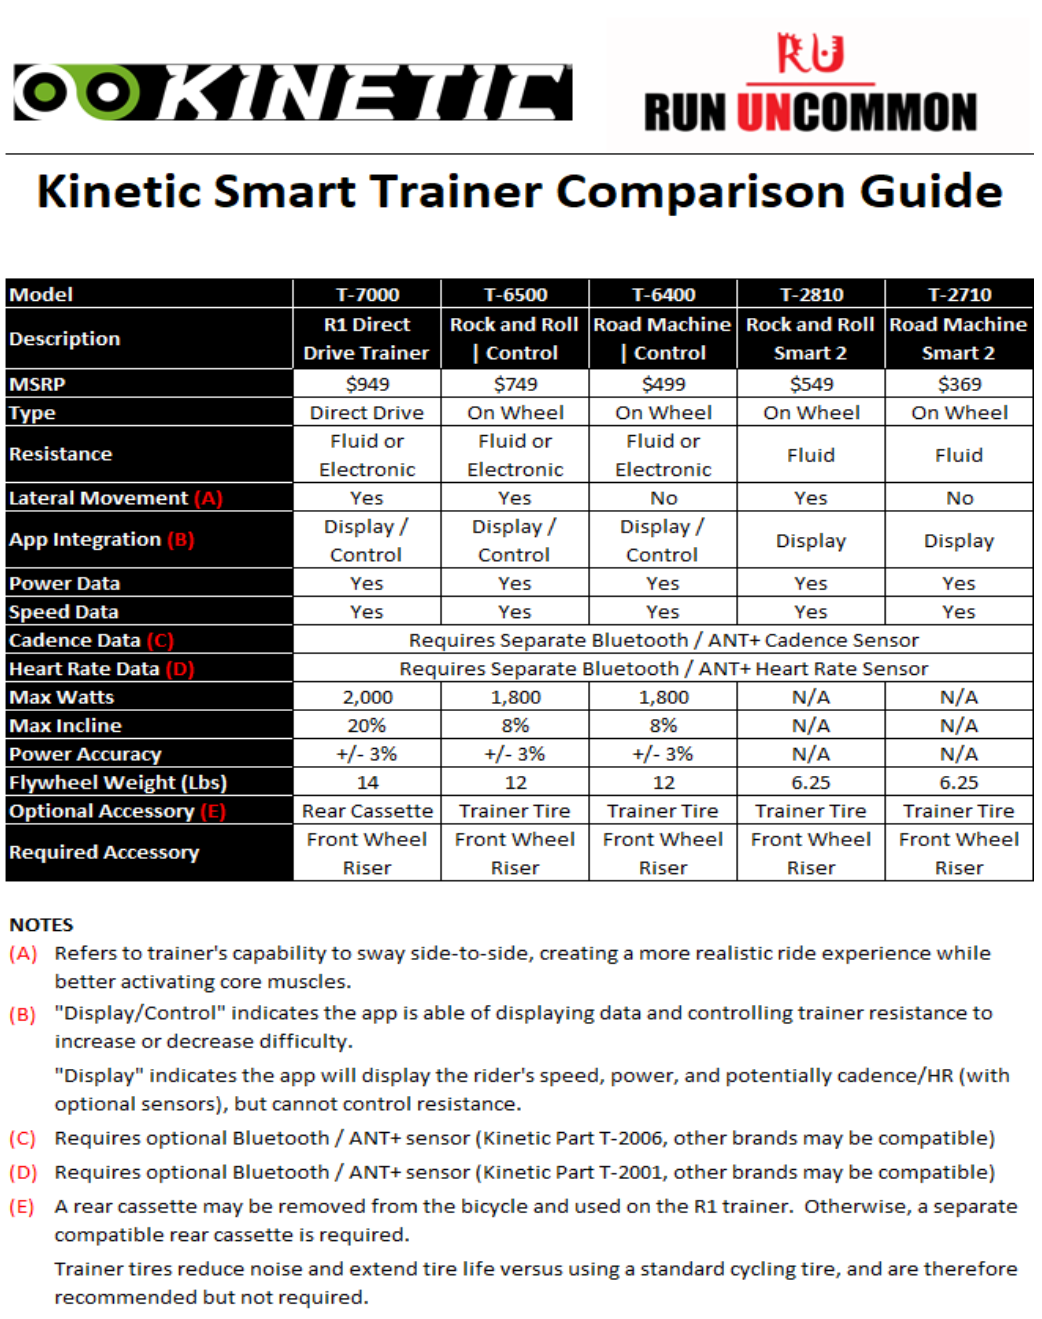 kinetic smart trainer buying guide